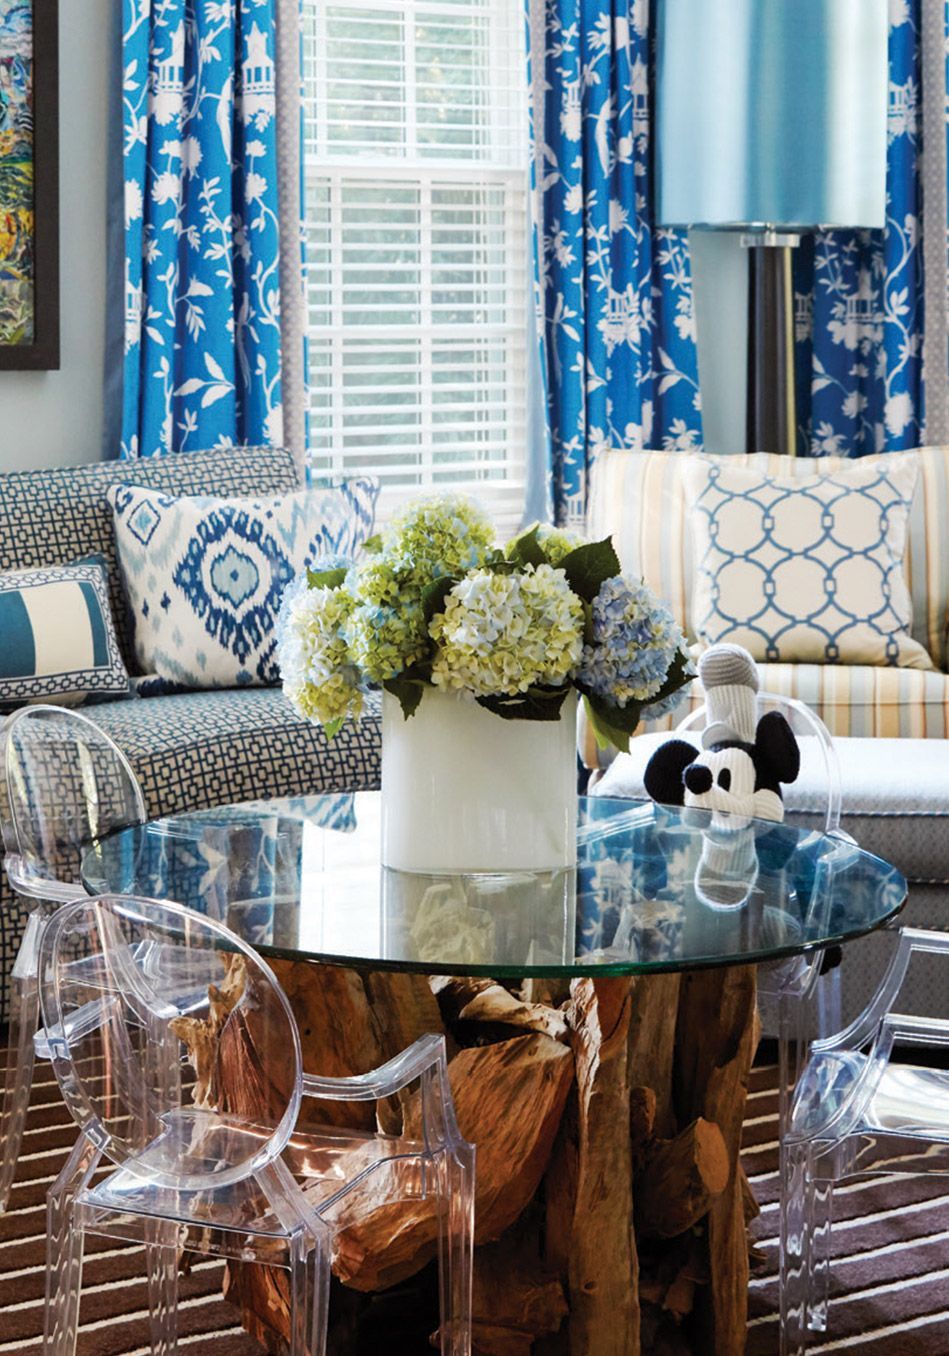 Professional Room Designer: How To Design Your Living Room Like A Pro